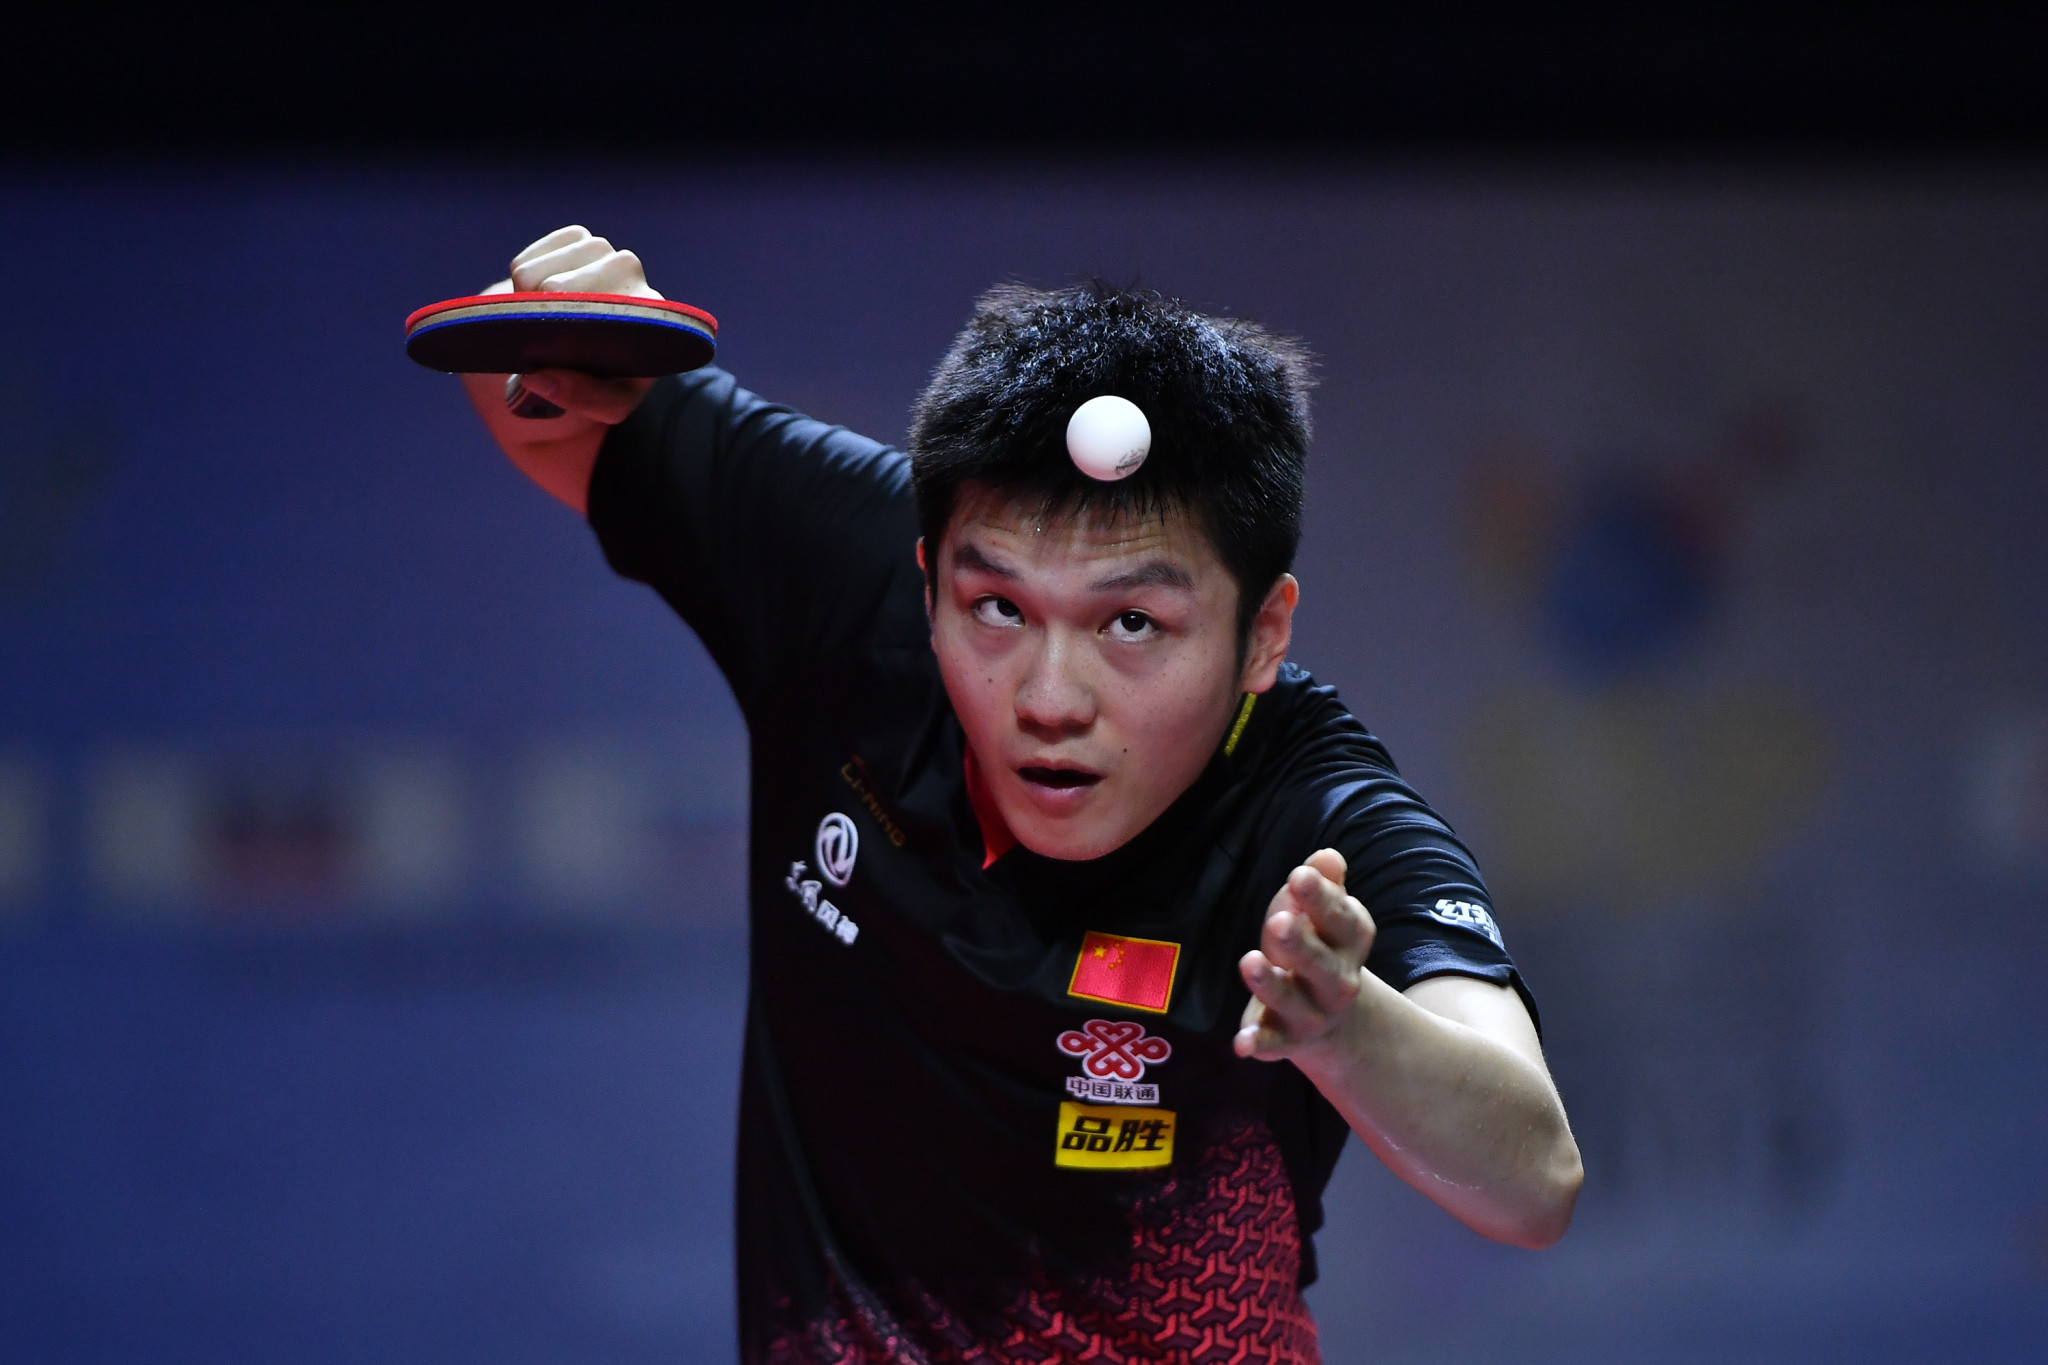 Fan Zhendong will lead the Chinese men's team as they bid to defend their title ©Getty Images